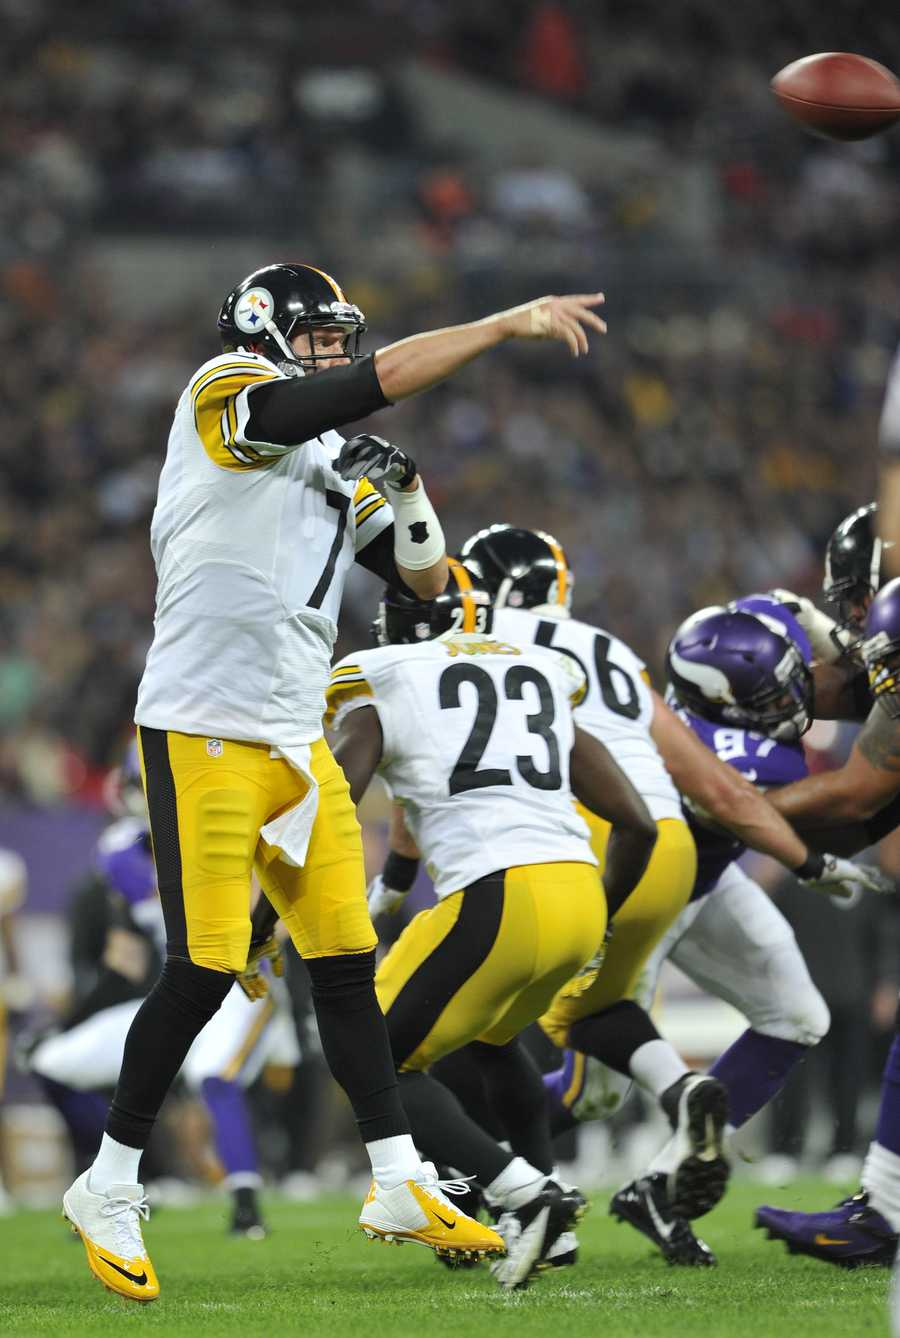 Ben Roethlisberger passed for 383 yards and a touchdown. He also threw a costly interception in the fourth quarter, and fumbled at the end of the game.